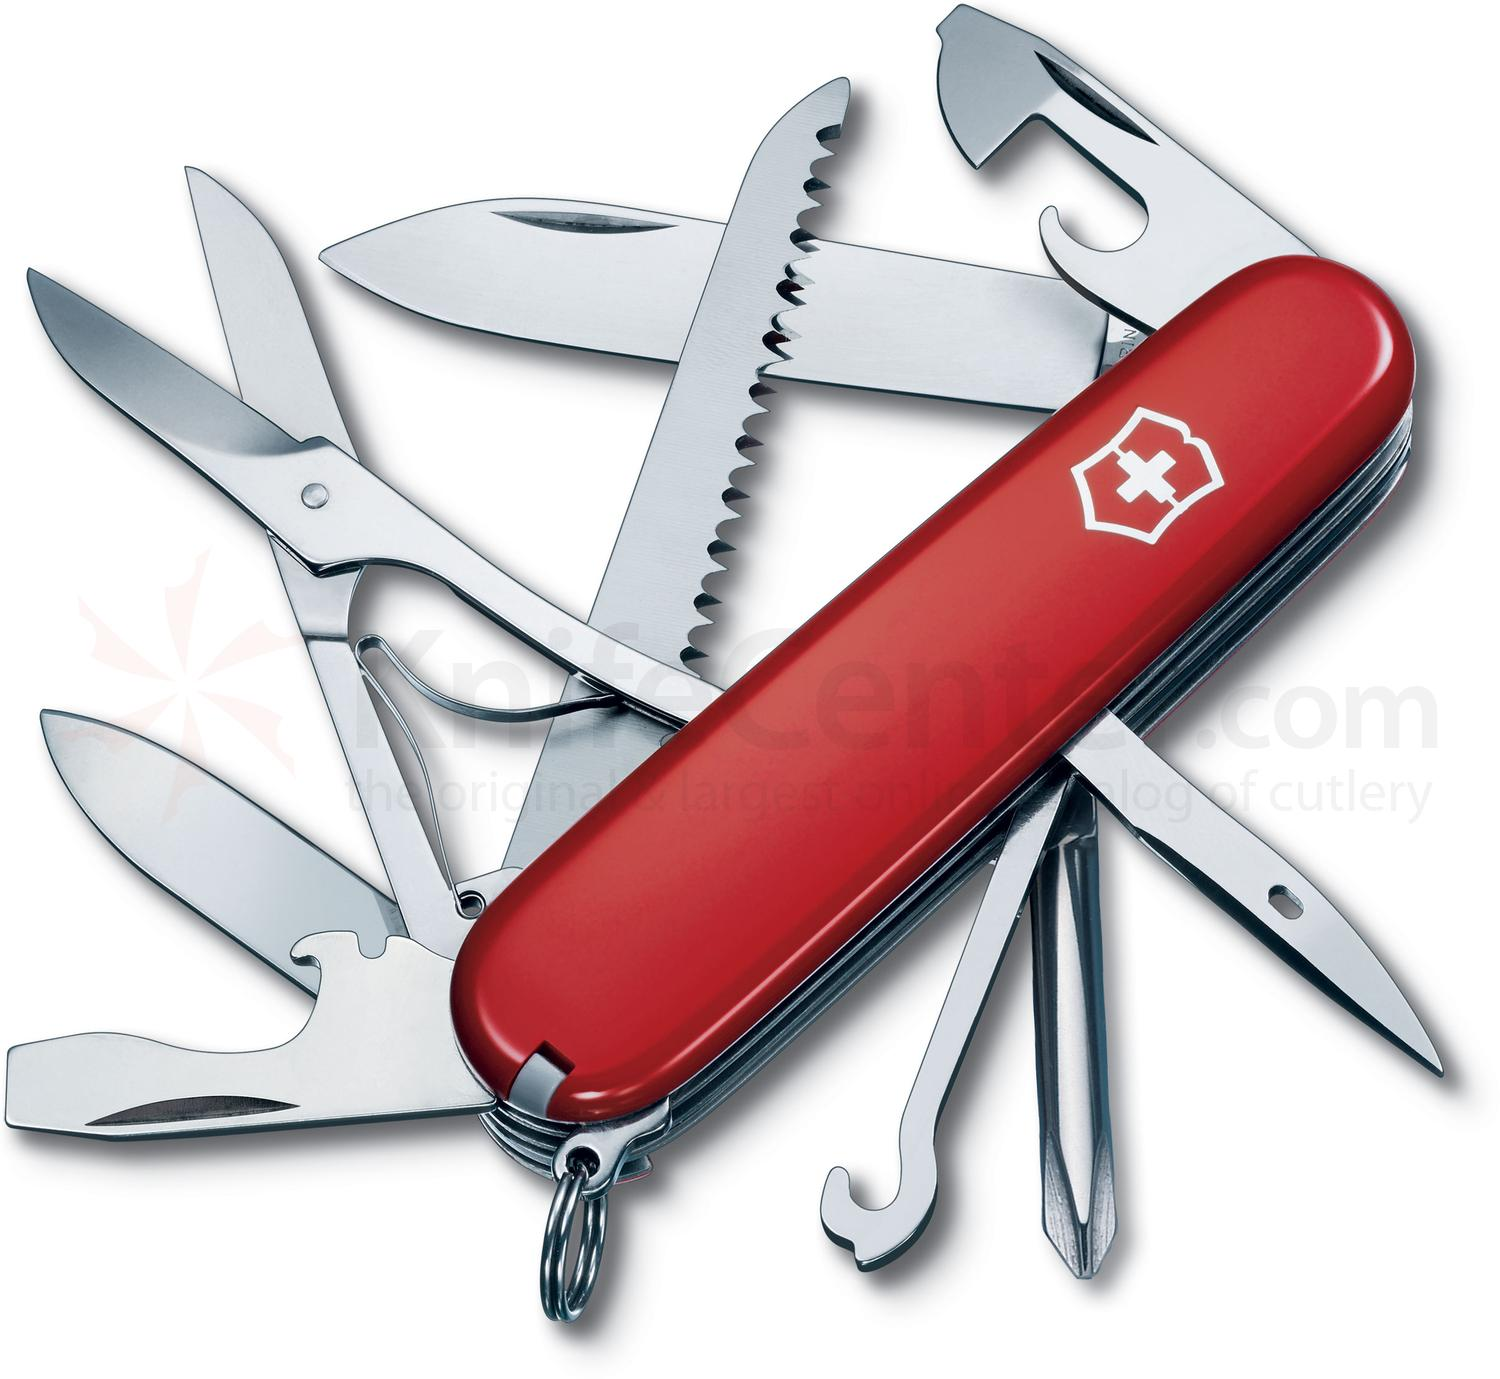 Victorinox Swiss Army Fieldmaster Multi-Tool, Red, 3.58 inch Closed